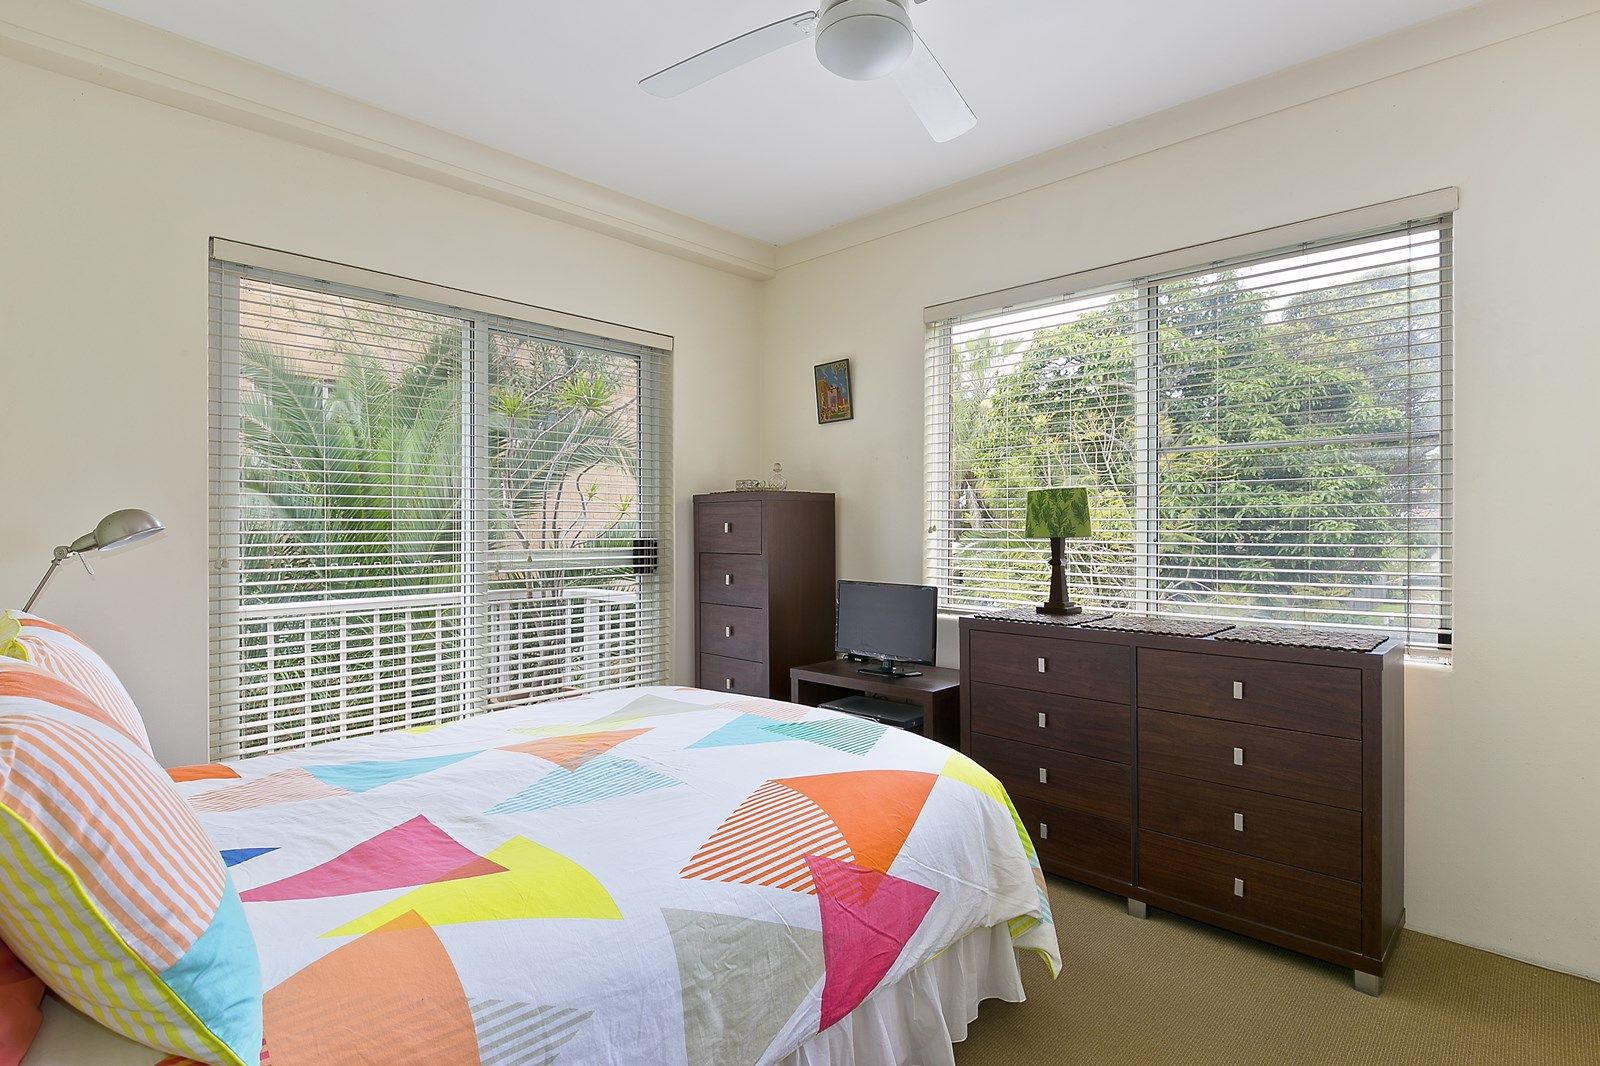 2/8 Wetherill Street, Narrabeen NSW 2101, Image 2